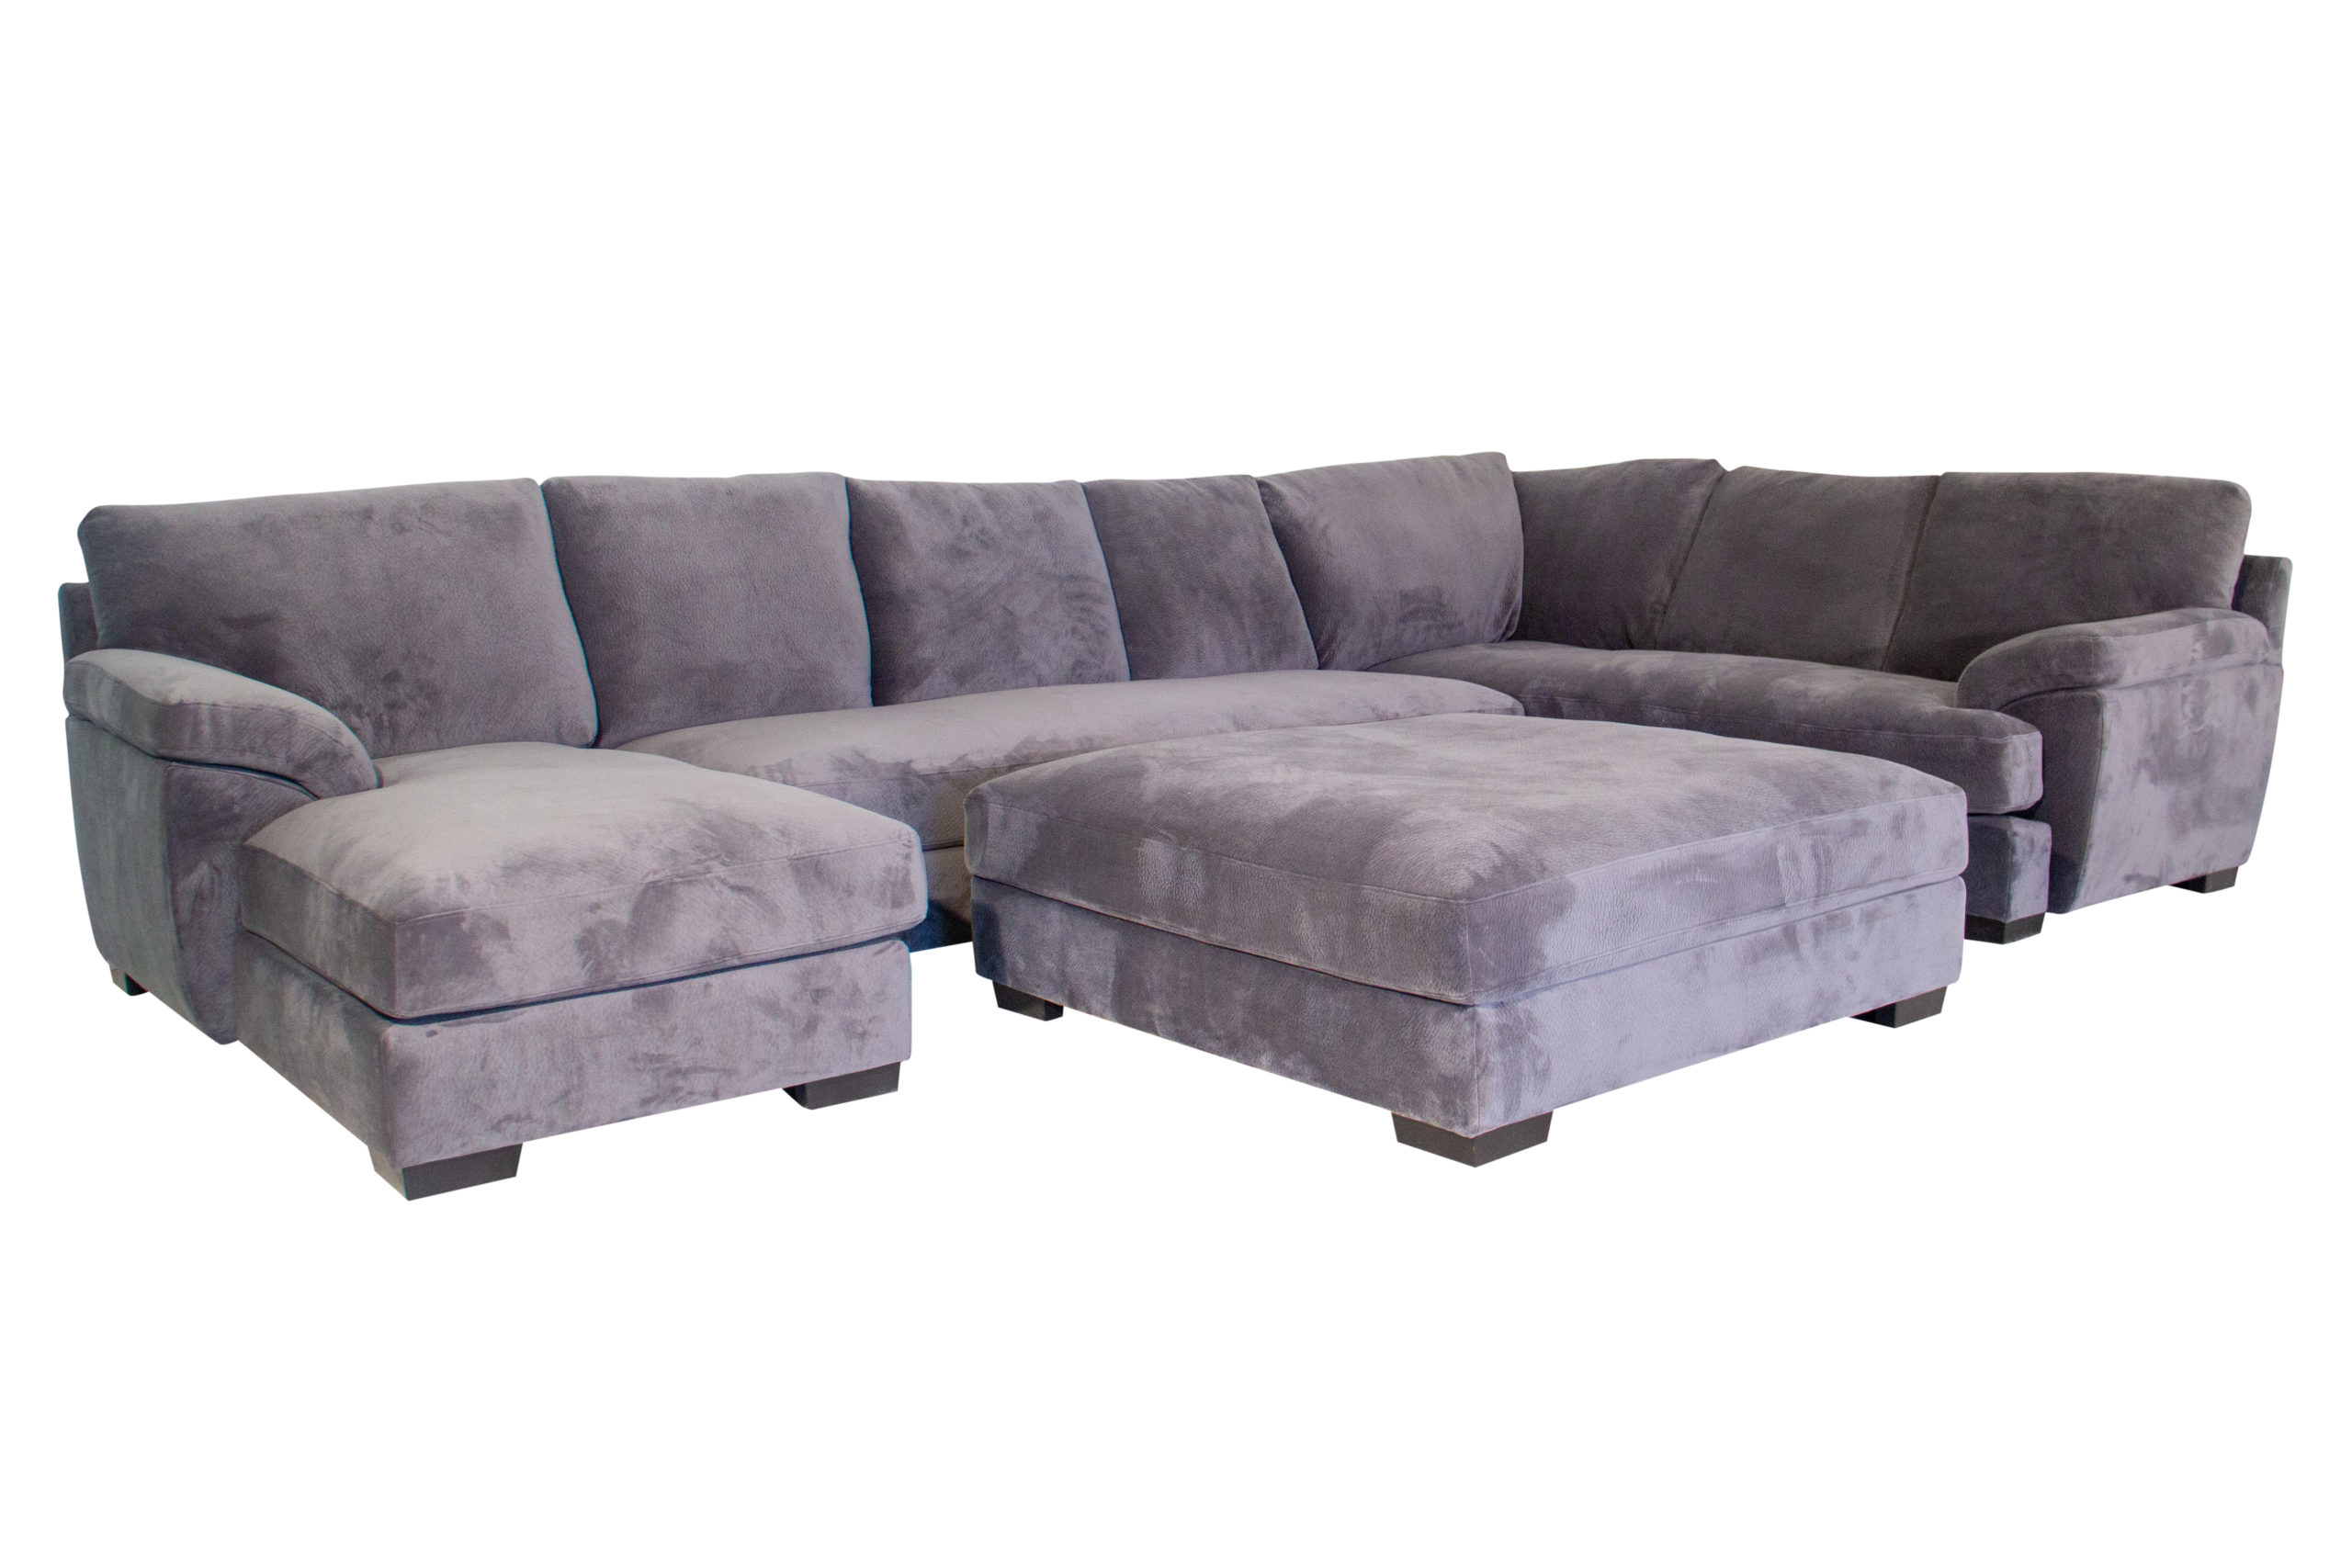 Oversized Luxury Sectional Sofa, Oversized Sectional Sofas With Chaise